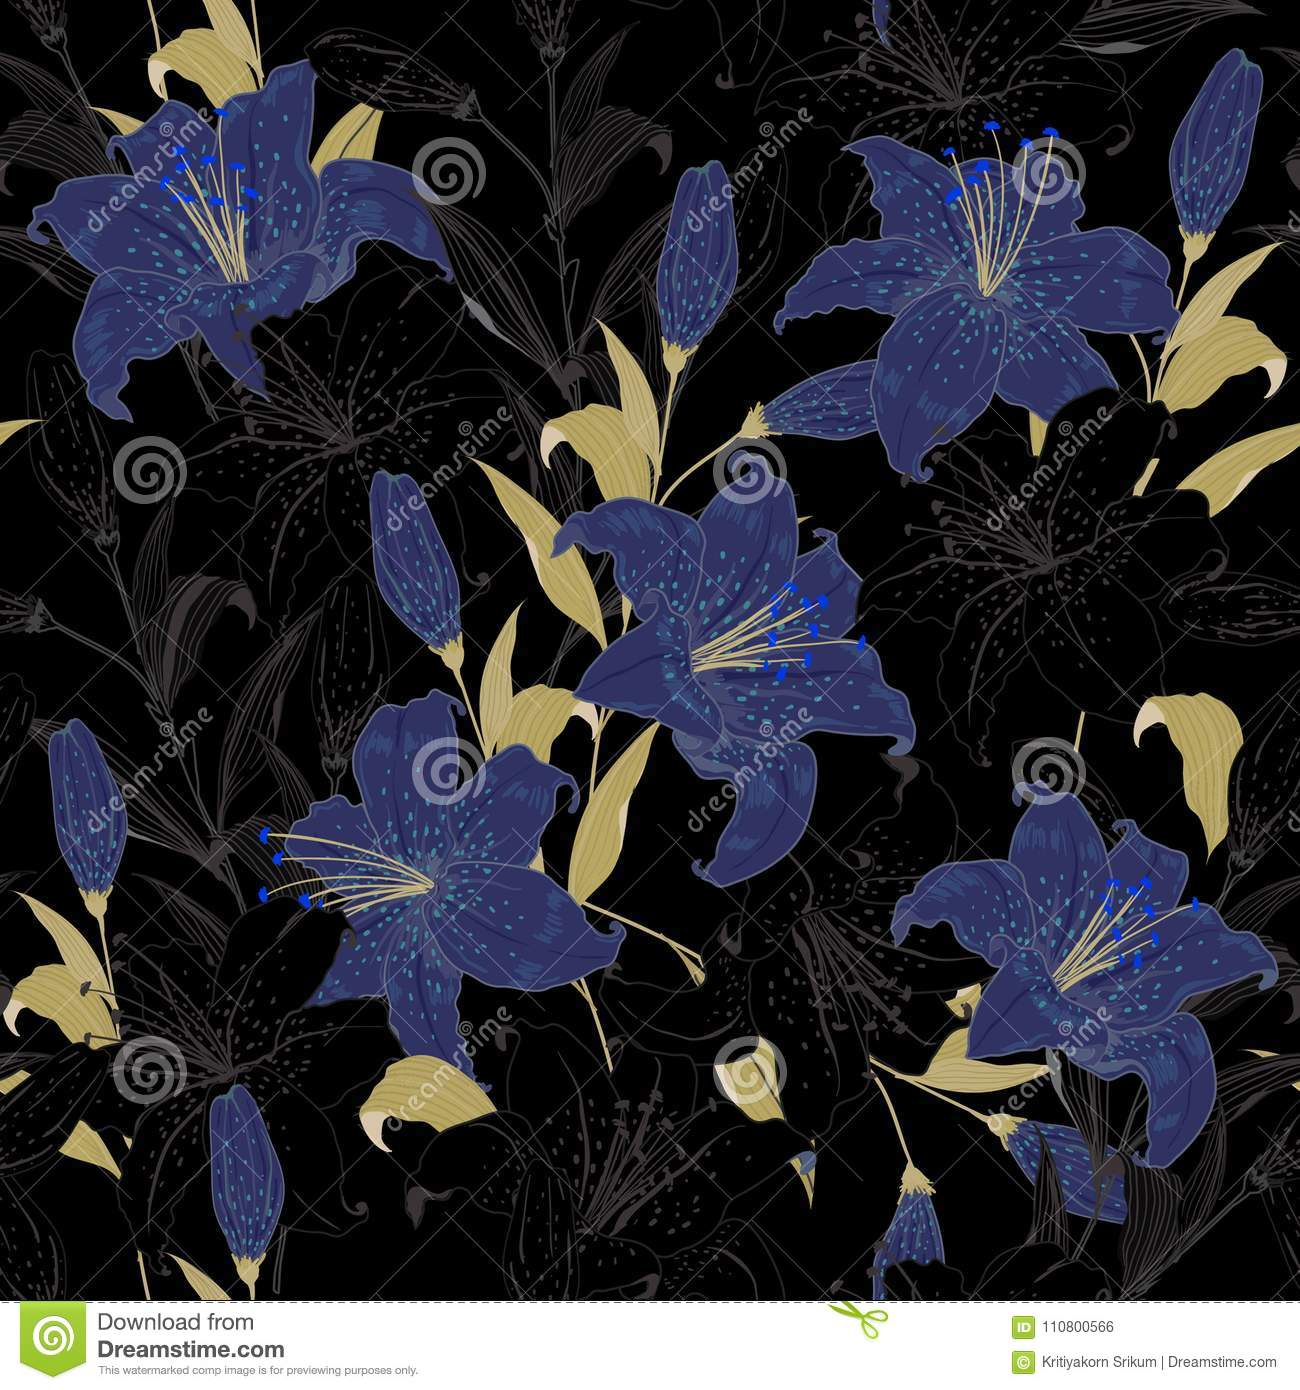 Beautiful Outline Garden Night Floral Pattern Blue Lily Flowers